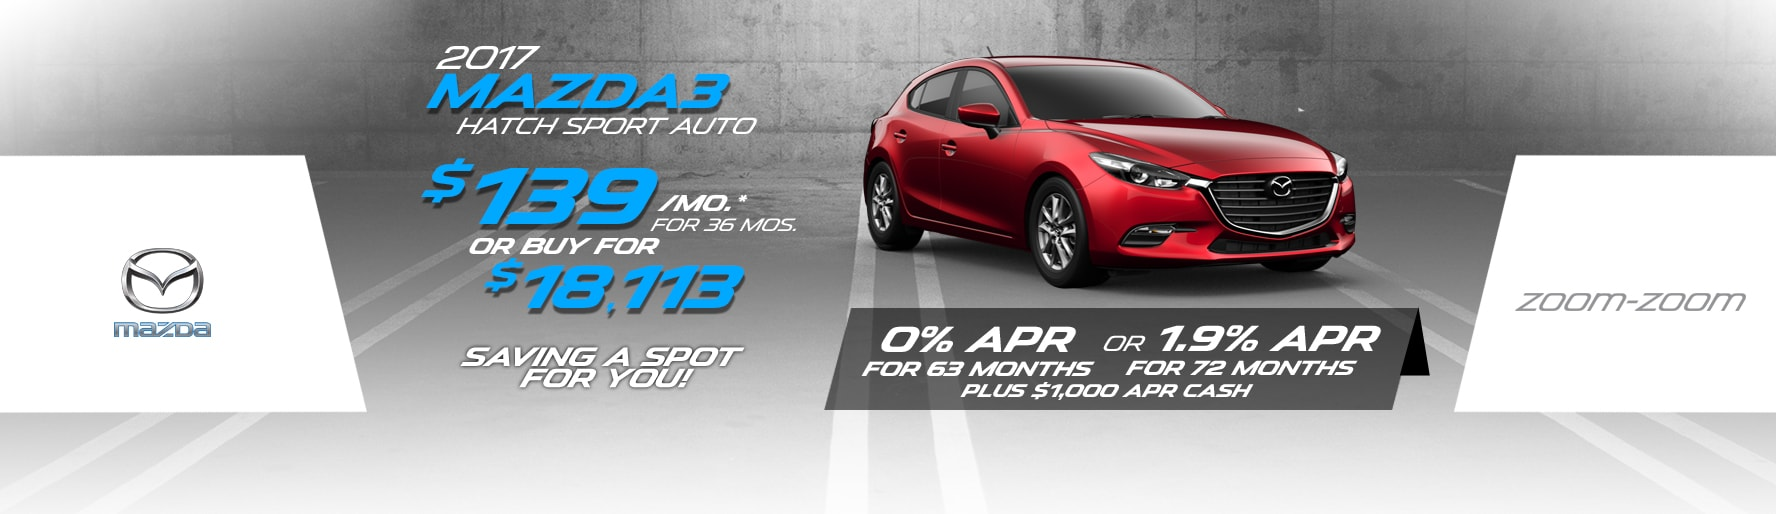 2017 Mazda3 Hatch Sport Auto Lease Special at Liberty Mazda